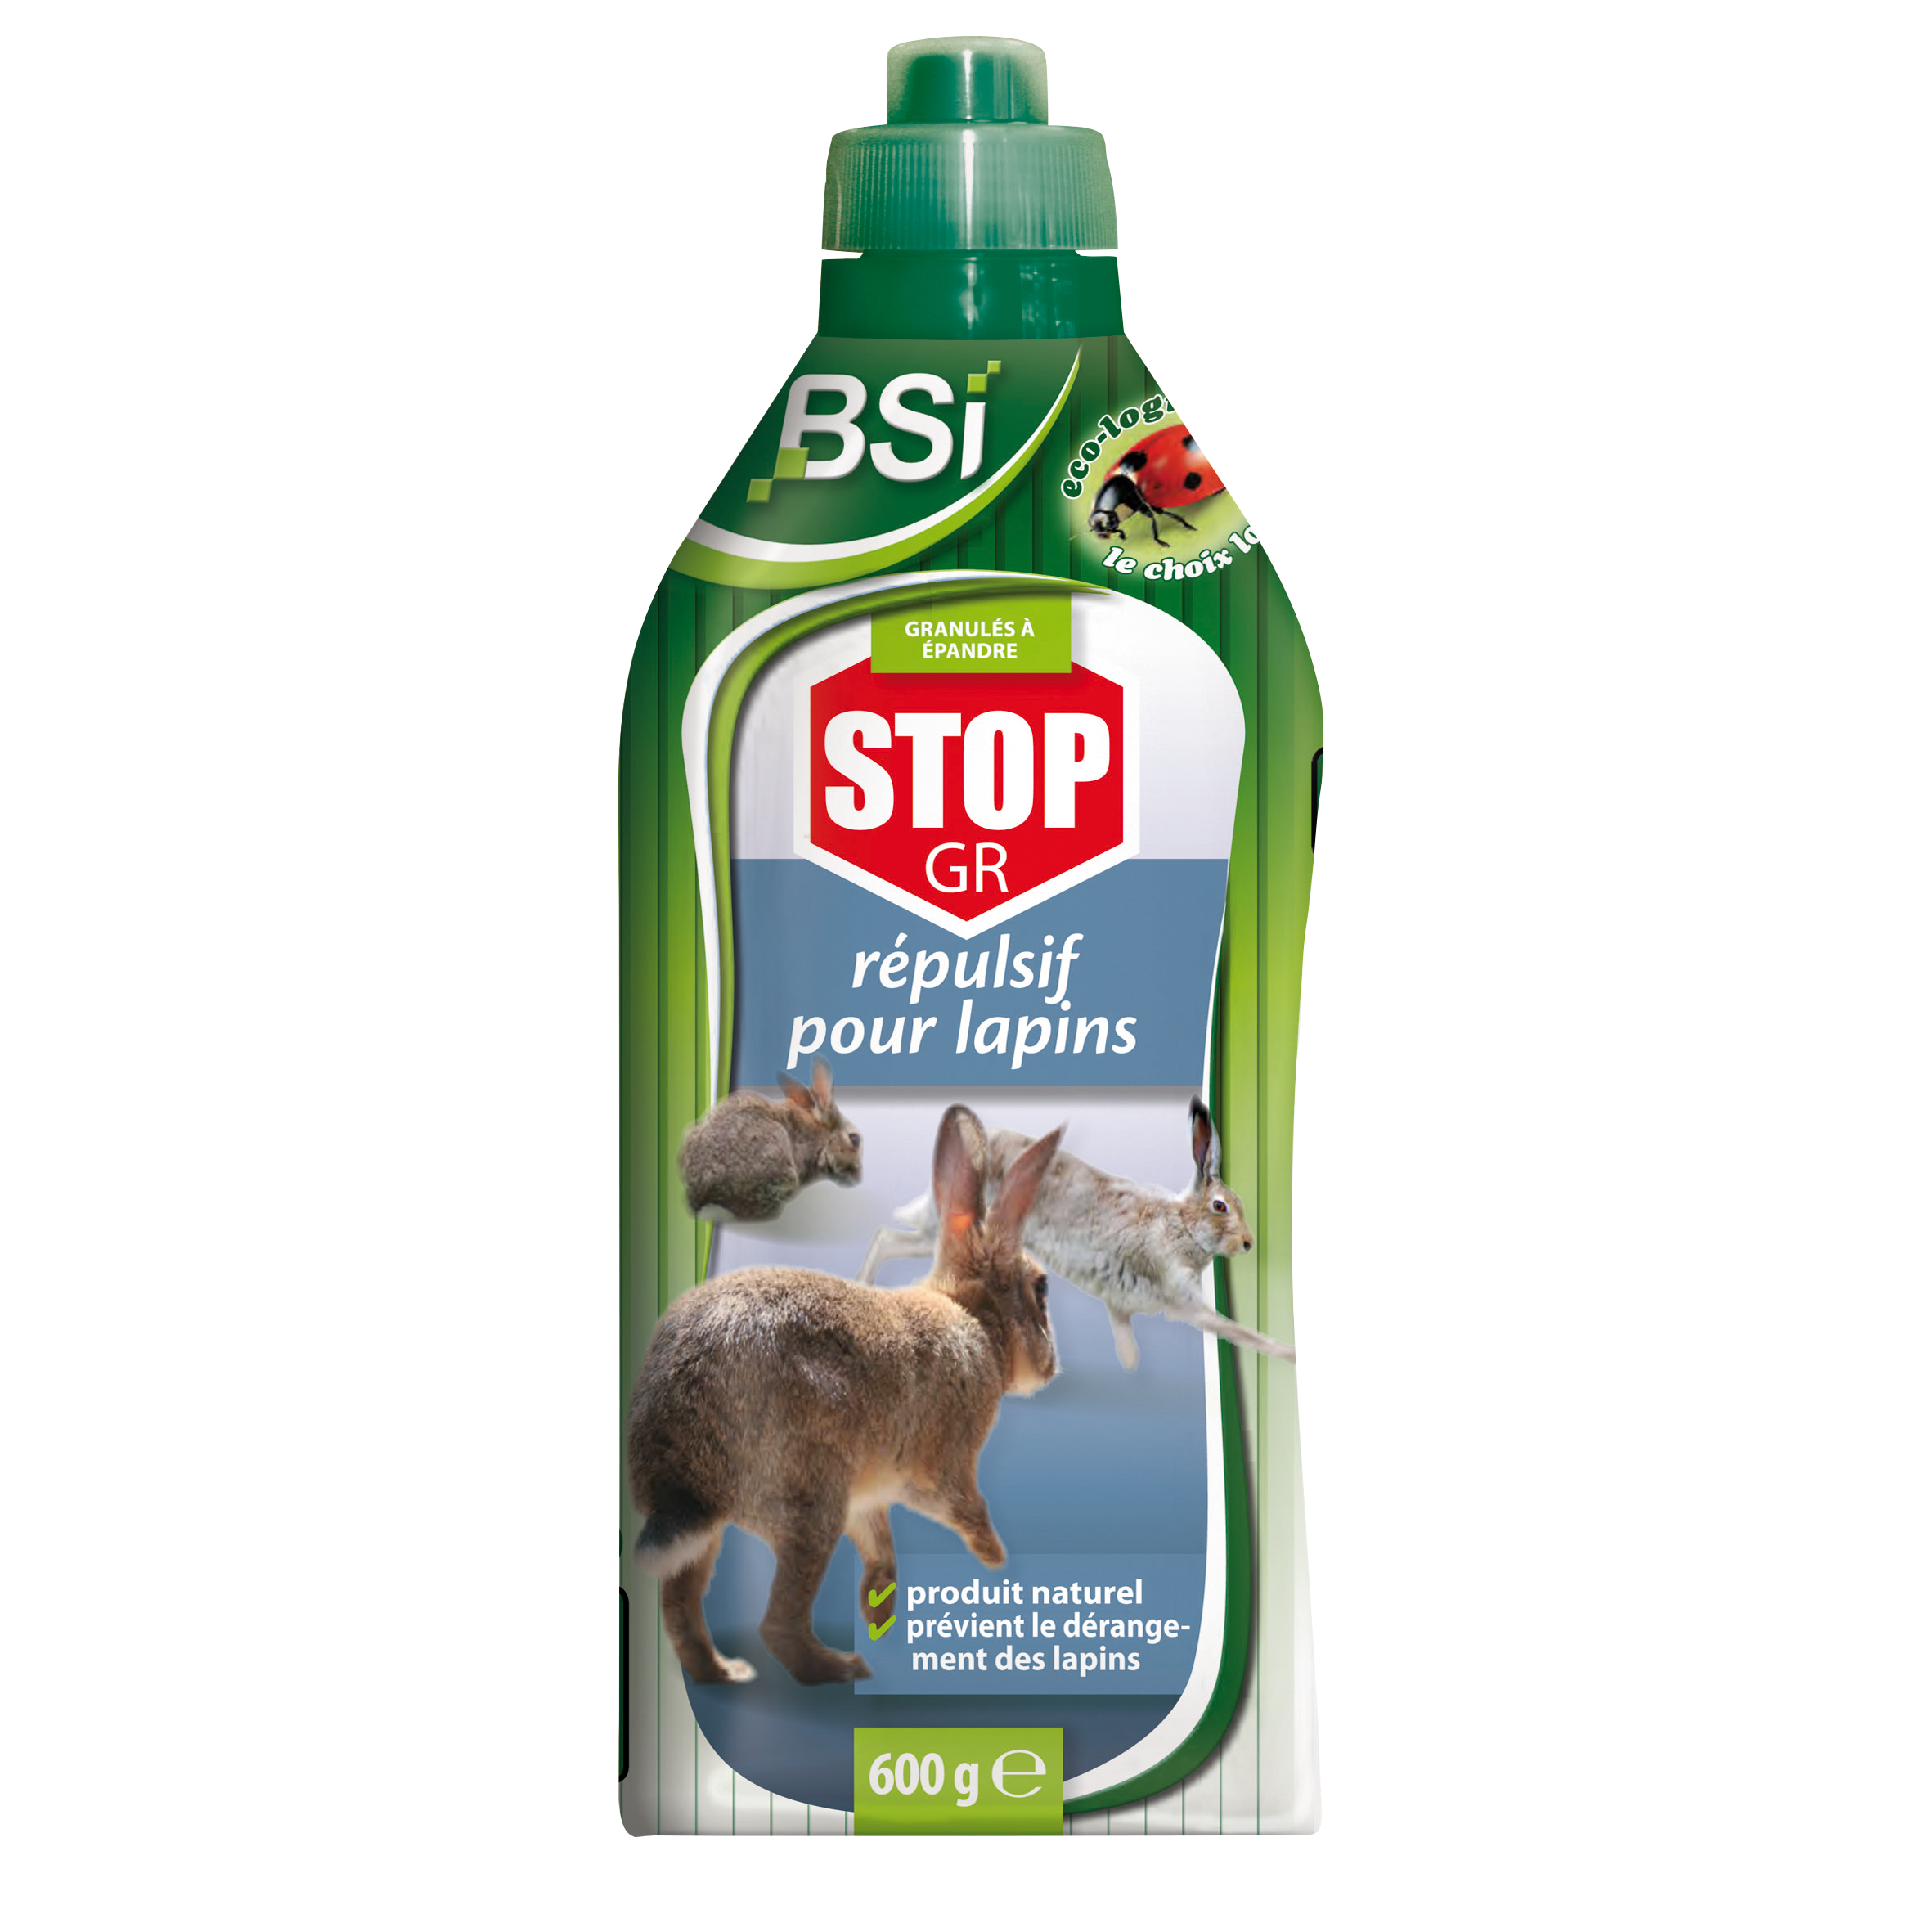 Stop GR Lapin 600 g image